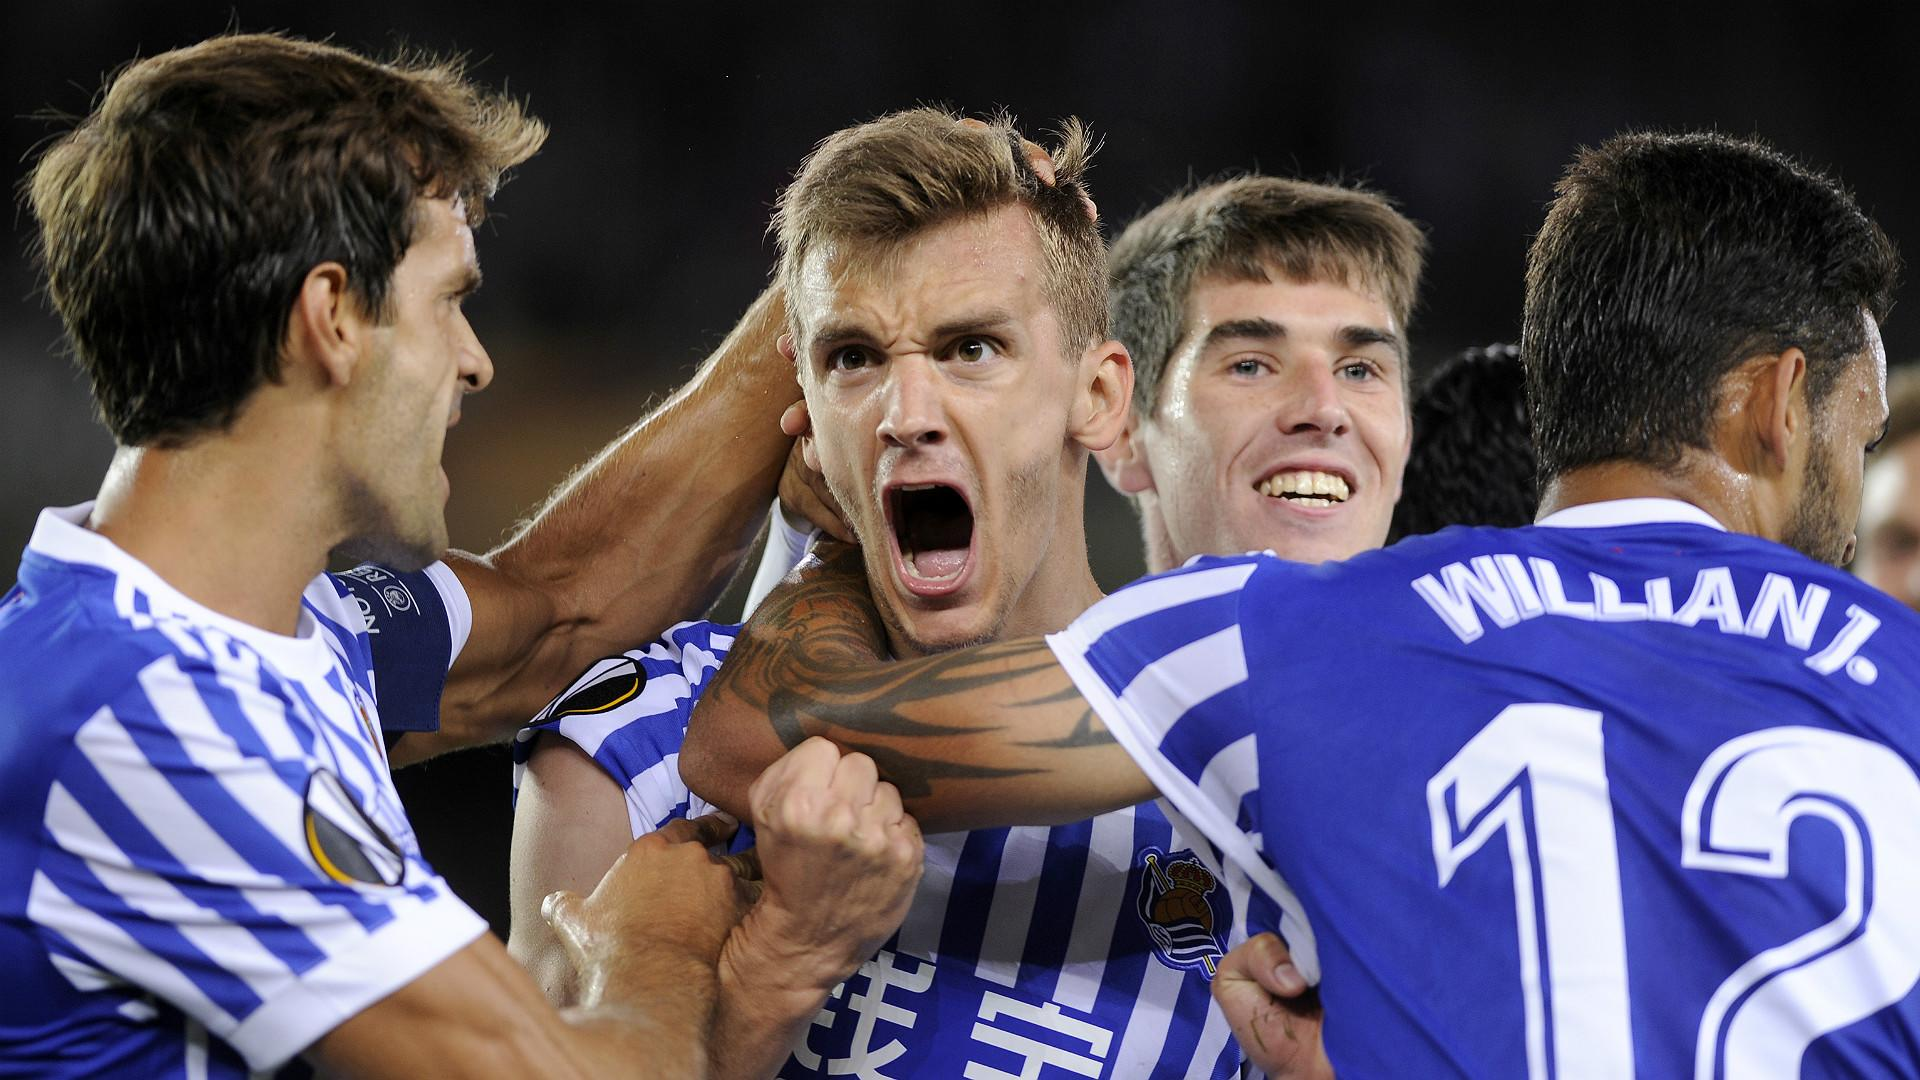 'If he can play against Real Madrid, he can play for us!' - Llorente ready for Premier League after Leeds move, says Bielsa